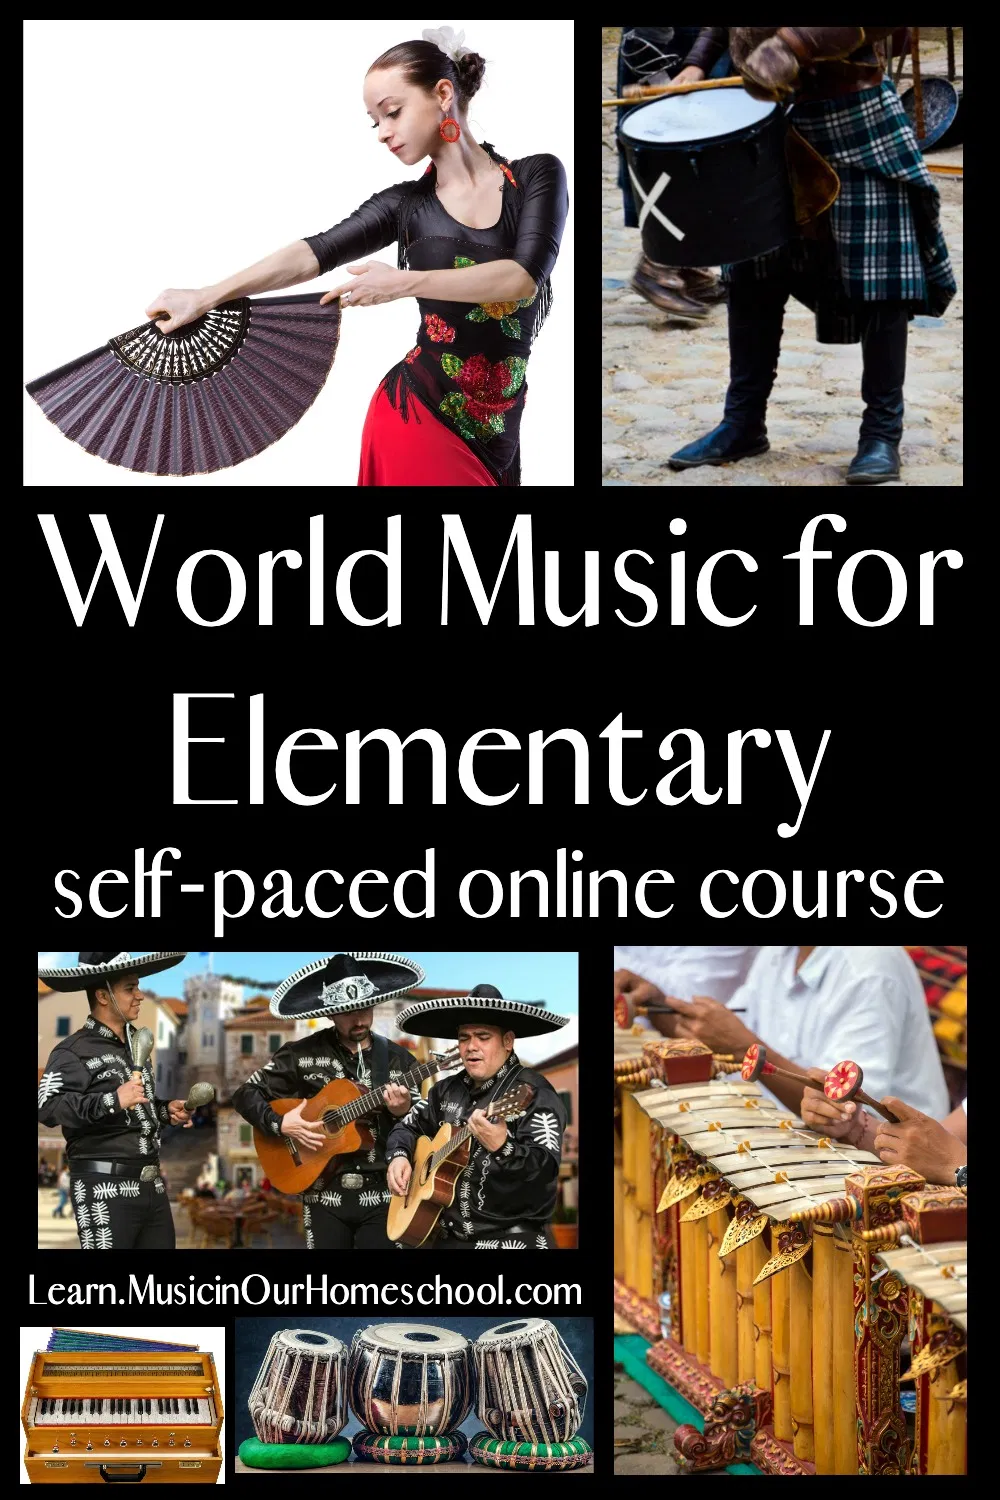 World Music for Elementary The Online Course Where Music